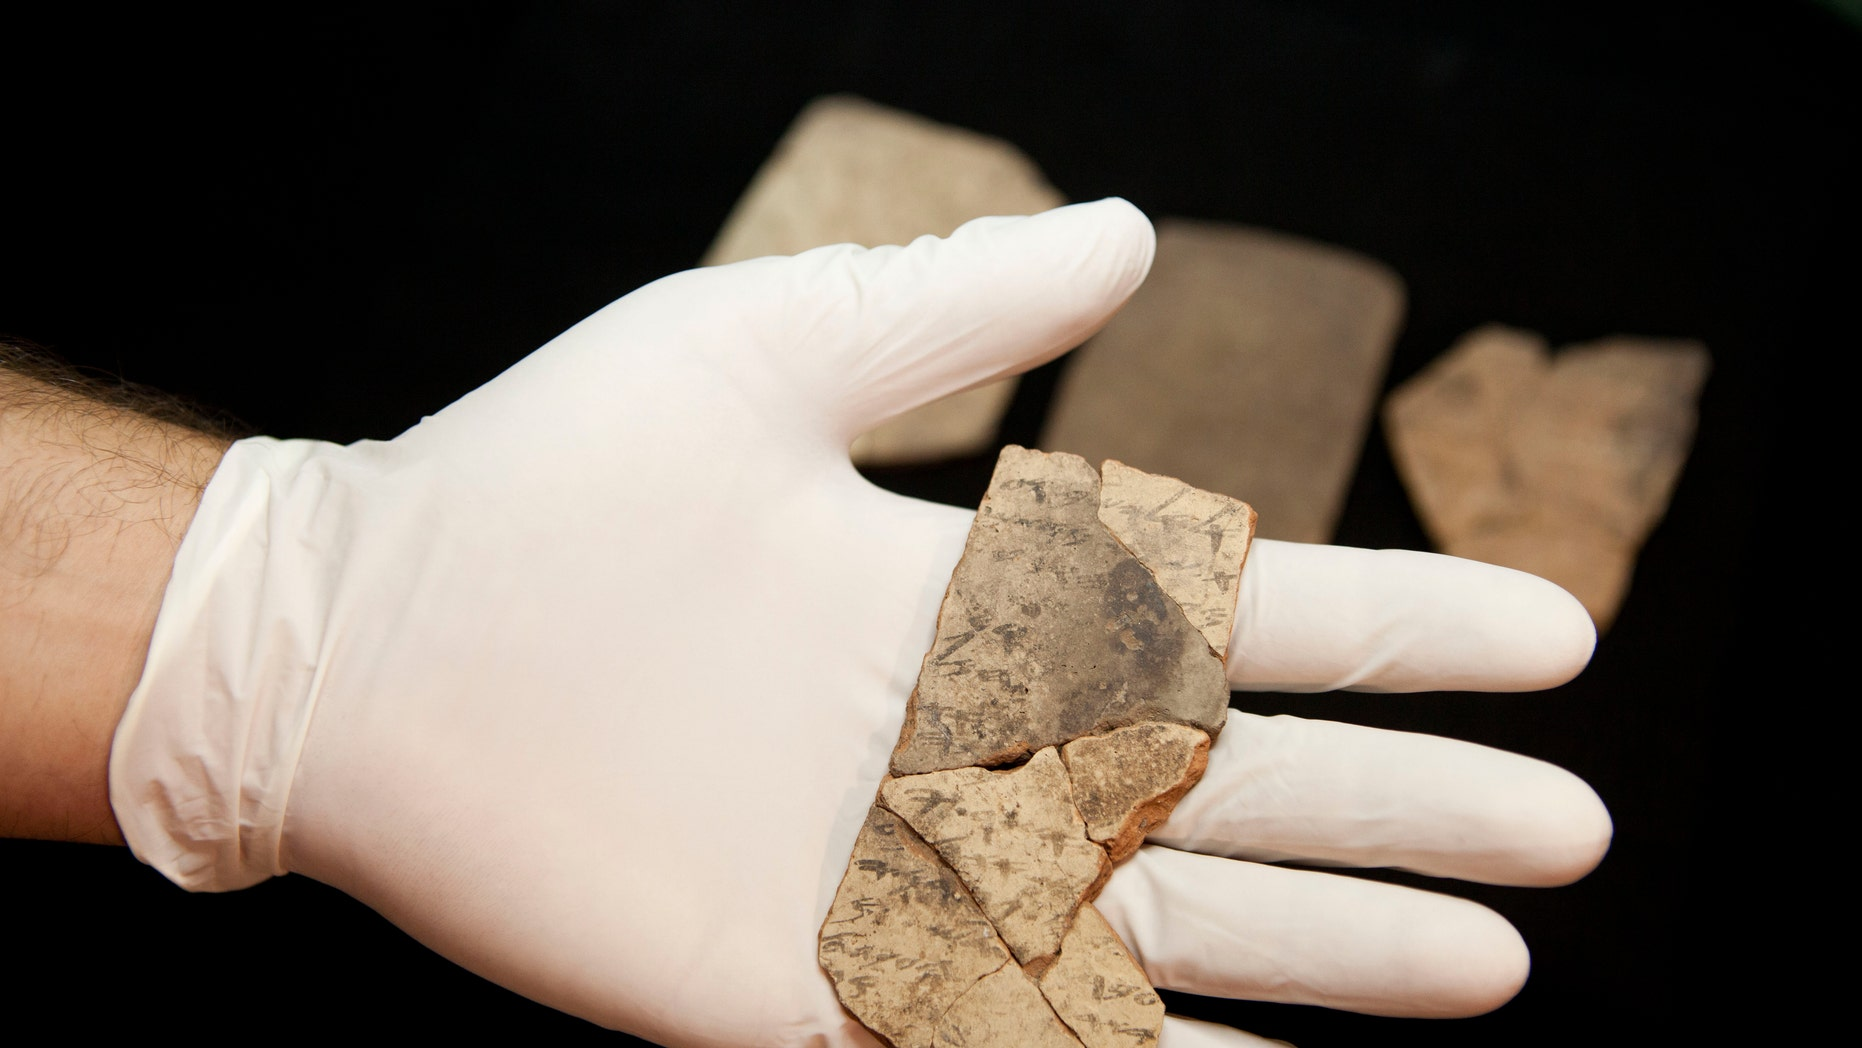 Letters inscribed on pottery, known as ostracons, which were unearthed in an excavation of a fort in Arad, Israel, and dated to about 600 B.C. shortly before Nebuchadnezzar's destruction of Jerusalem, are seen in Israel Museum in Jerusalem Tuesday, April 12, 2016. (AP Photo/Dan Balilty)